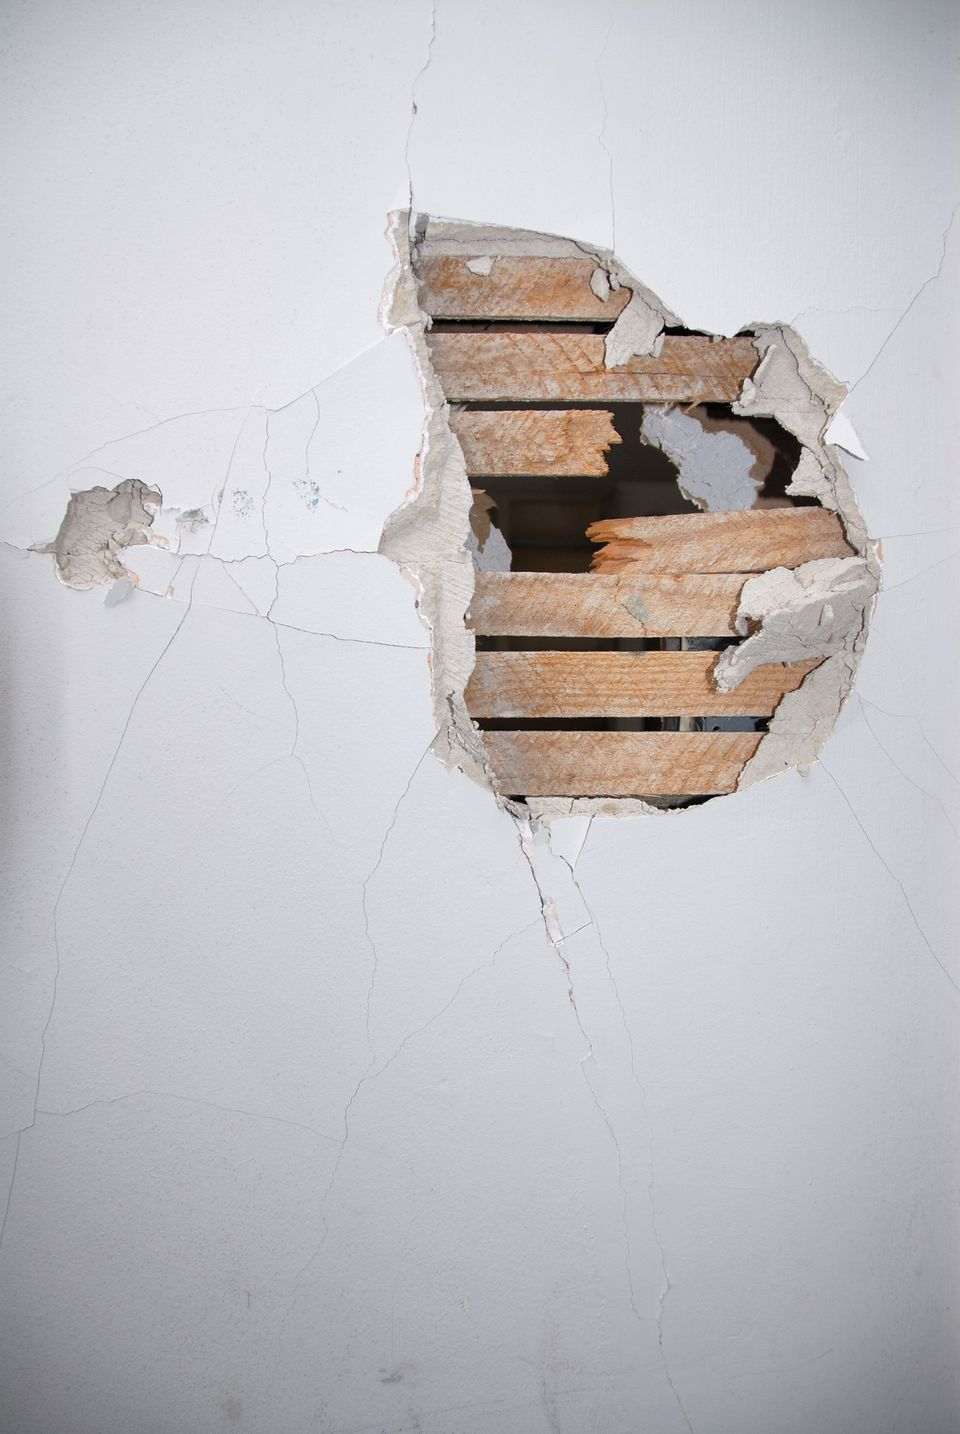 How To Fix Small Holes In Drywall